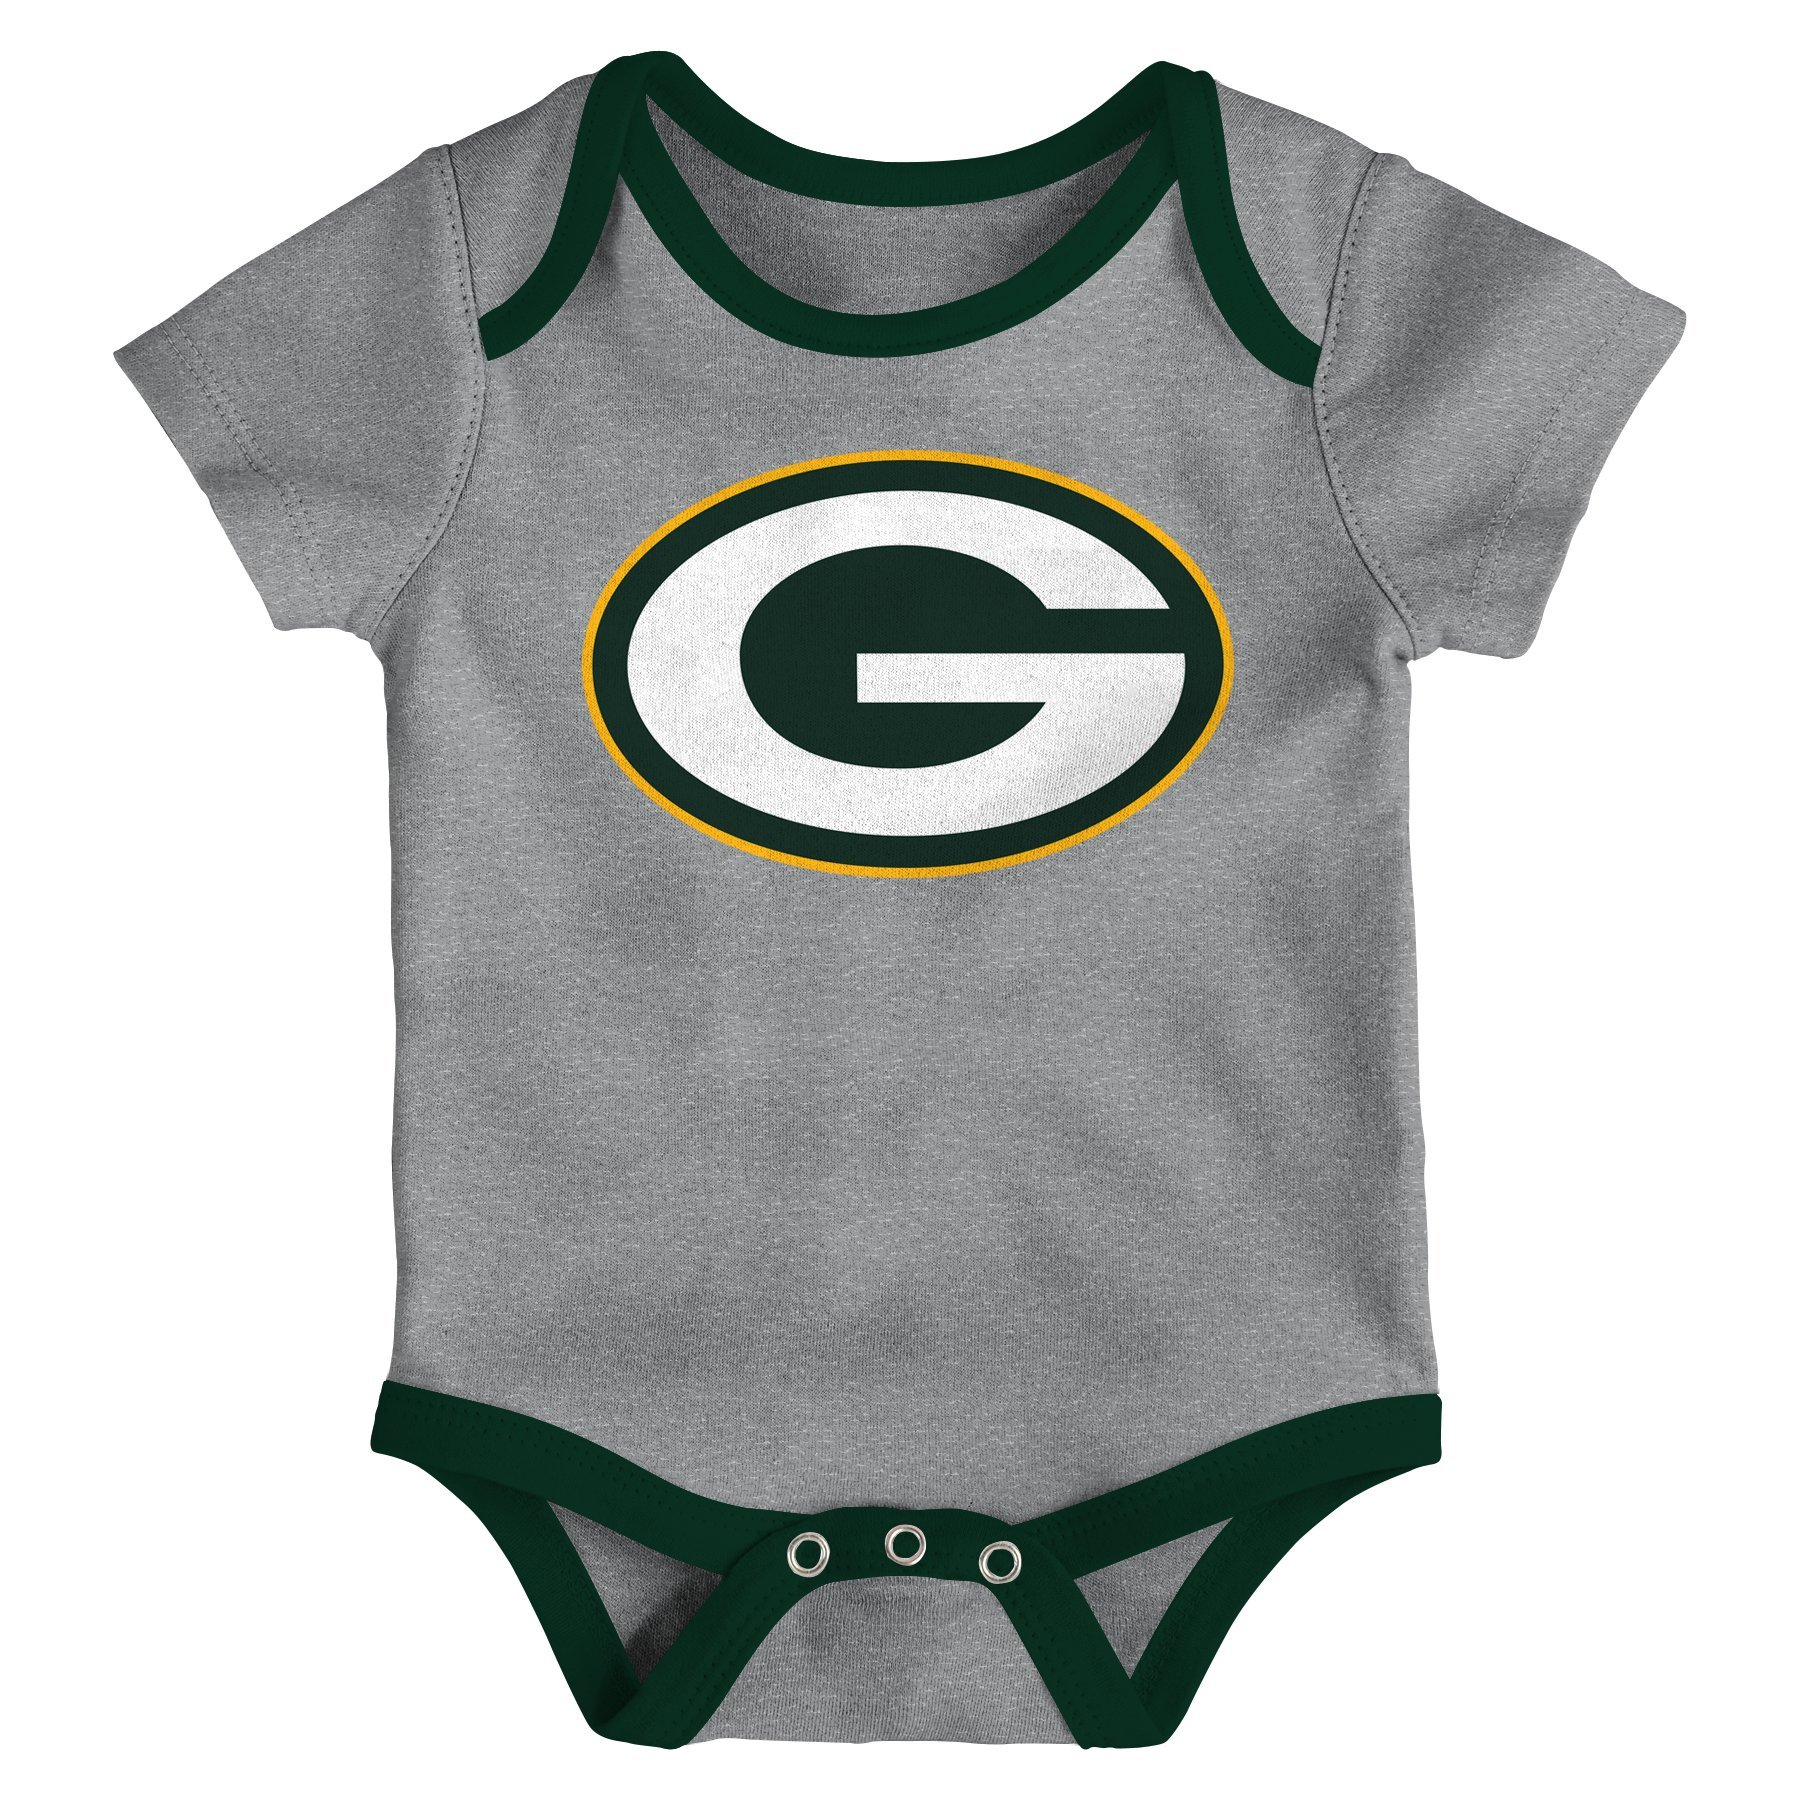 9366ddfa NFL by Outerstuff NFL Green Bay Packers Newborn & Infant Little ...